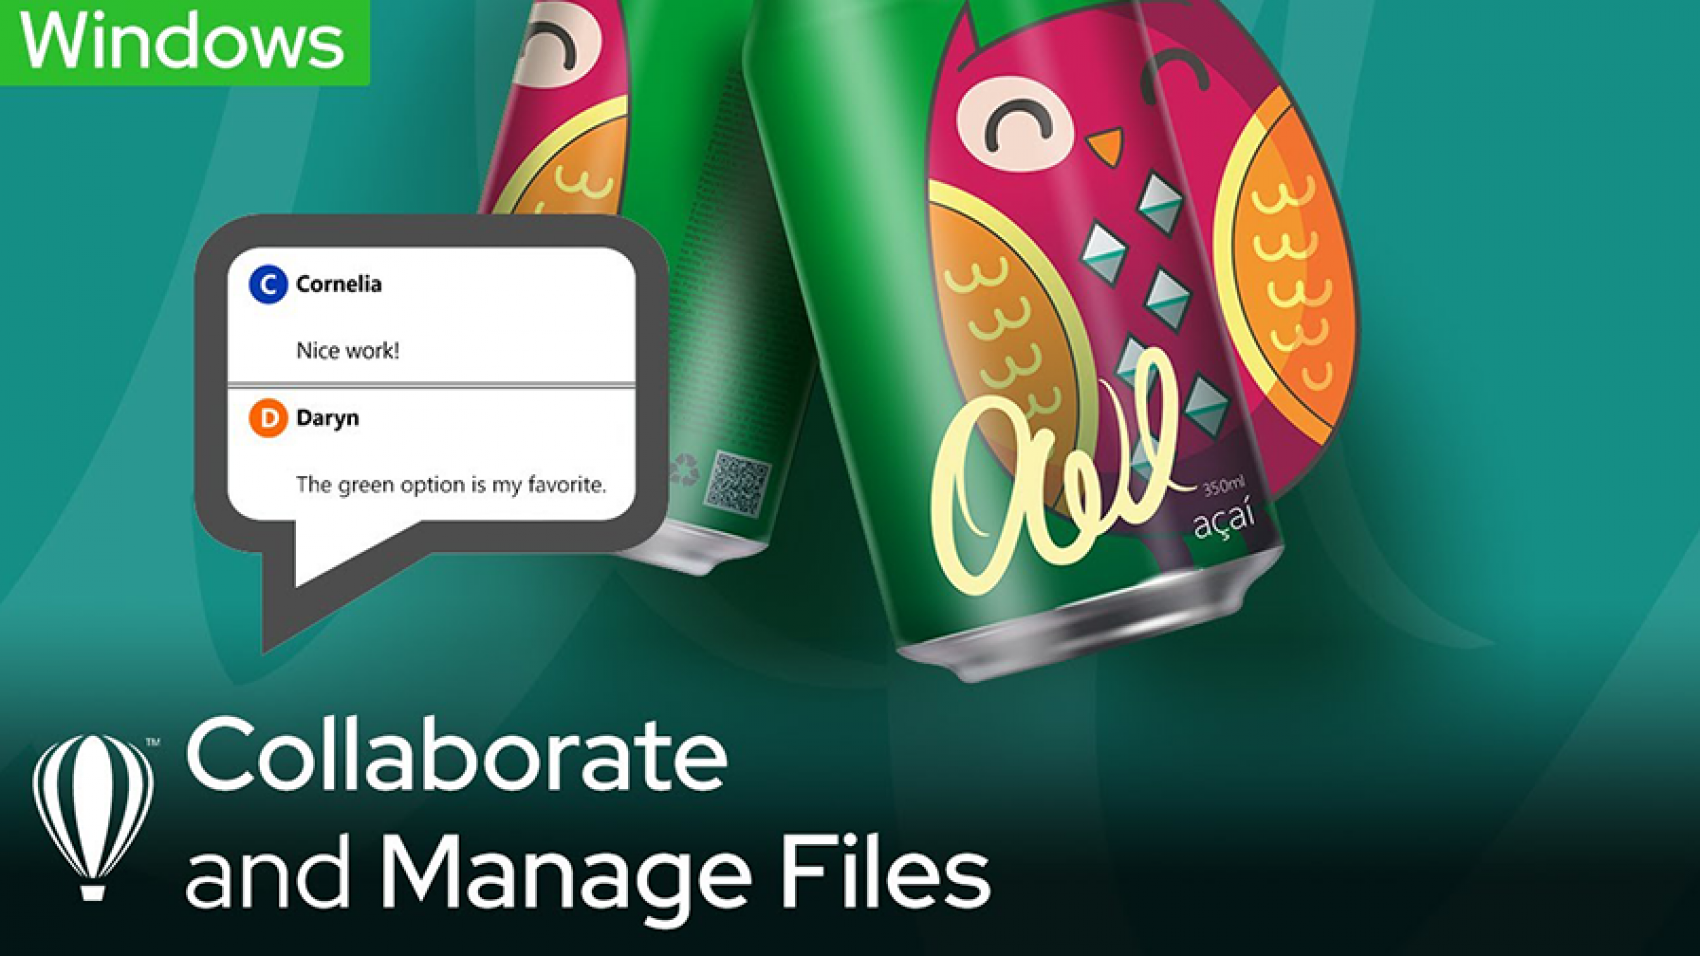 Collaborate and Manage Files